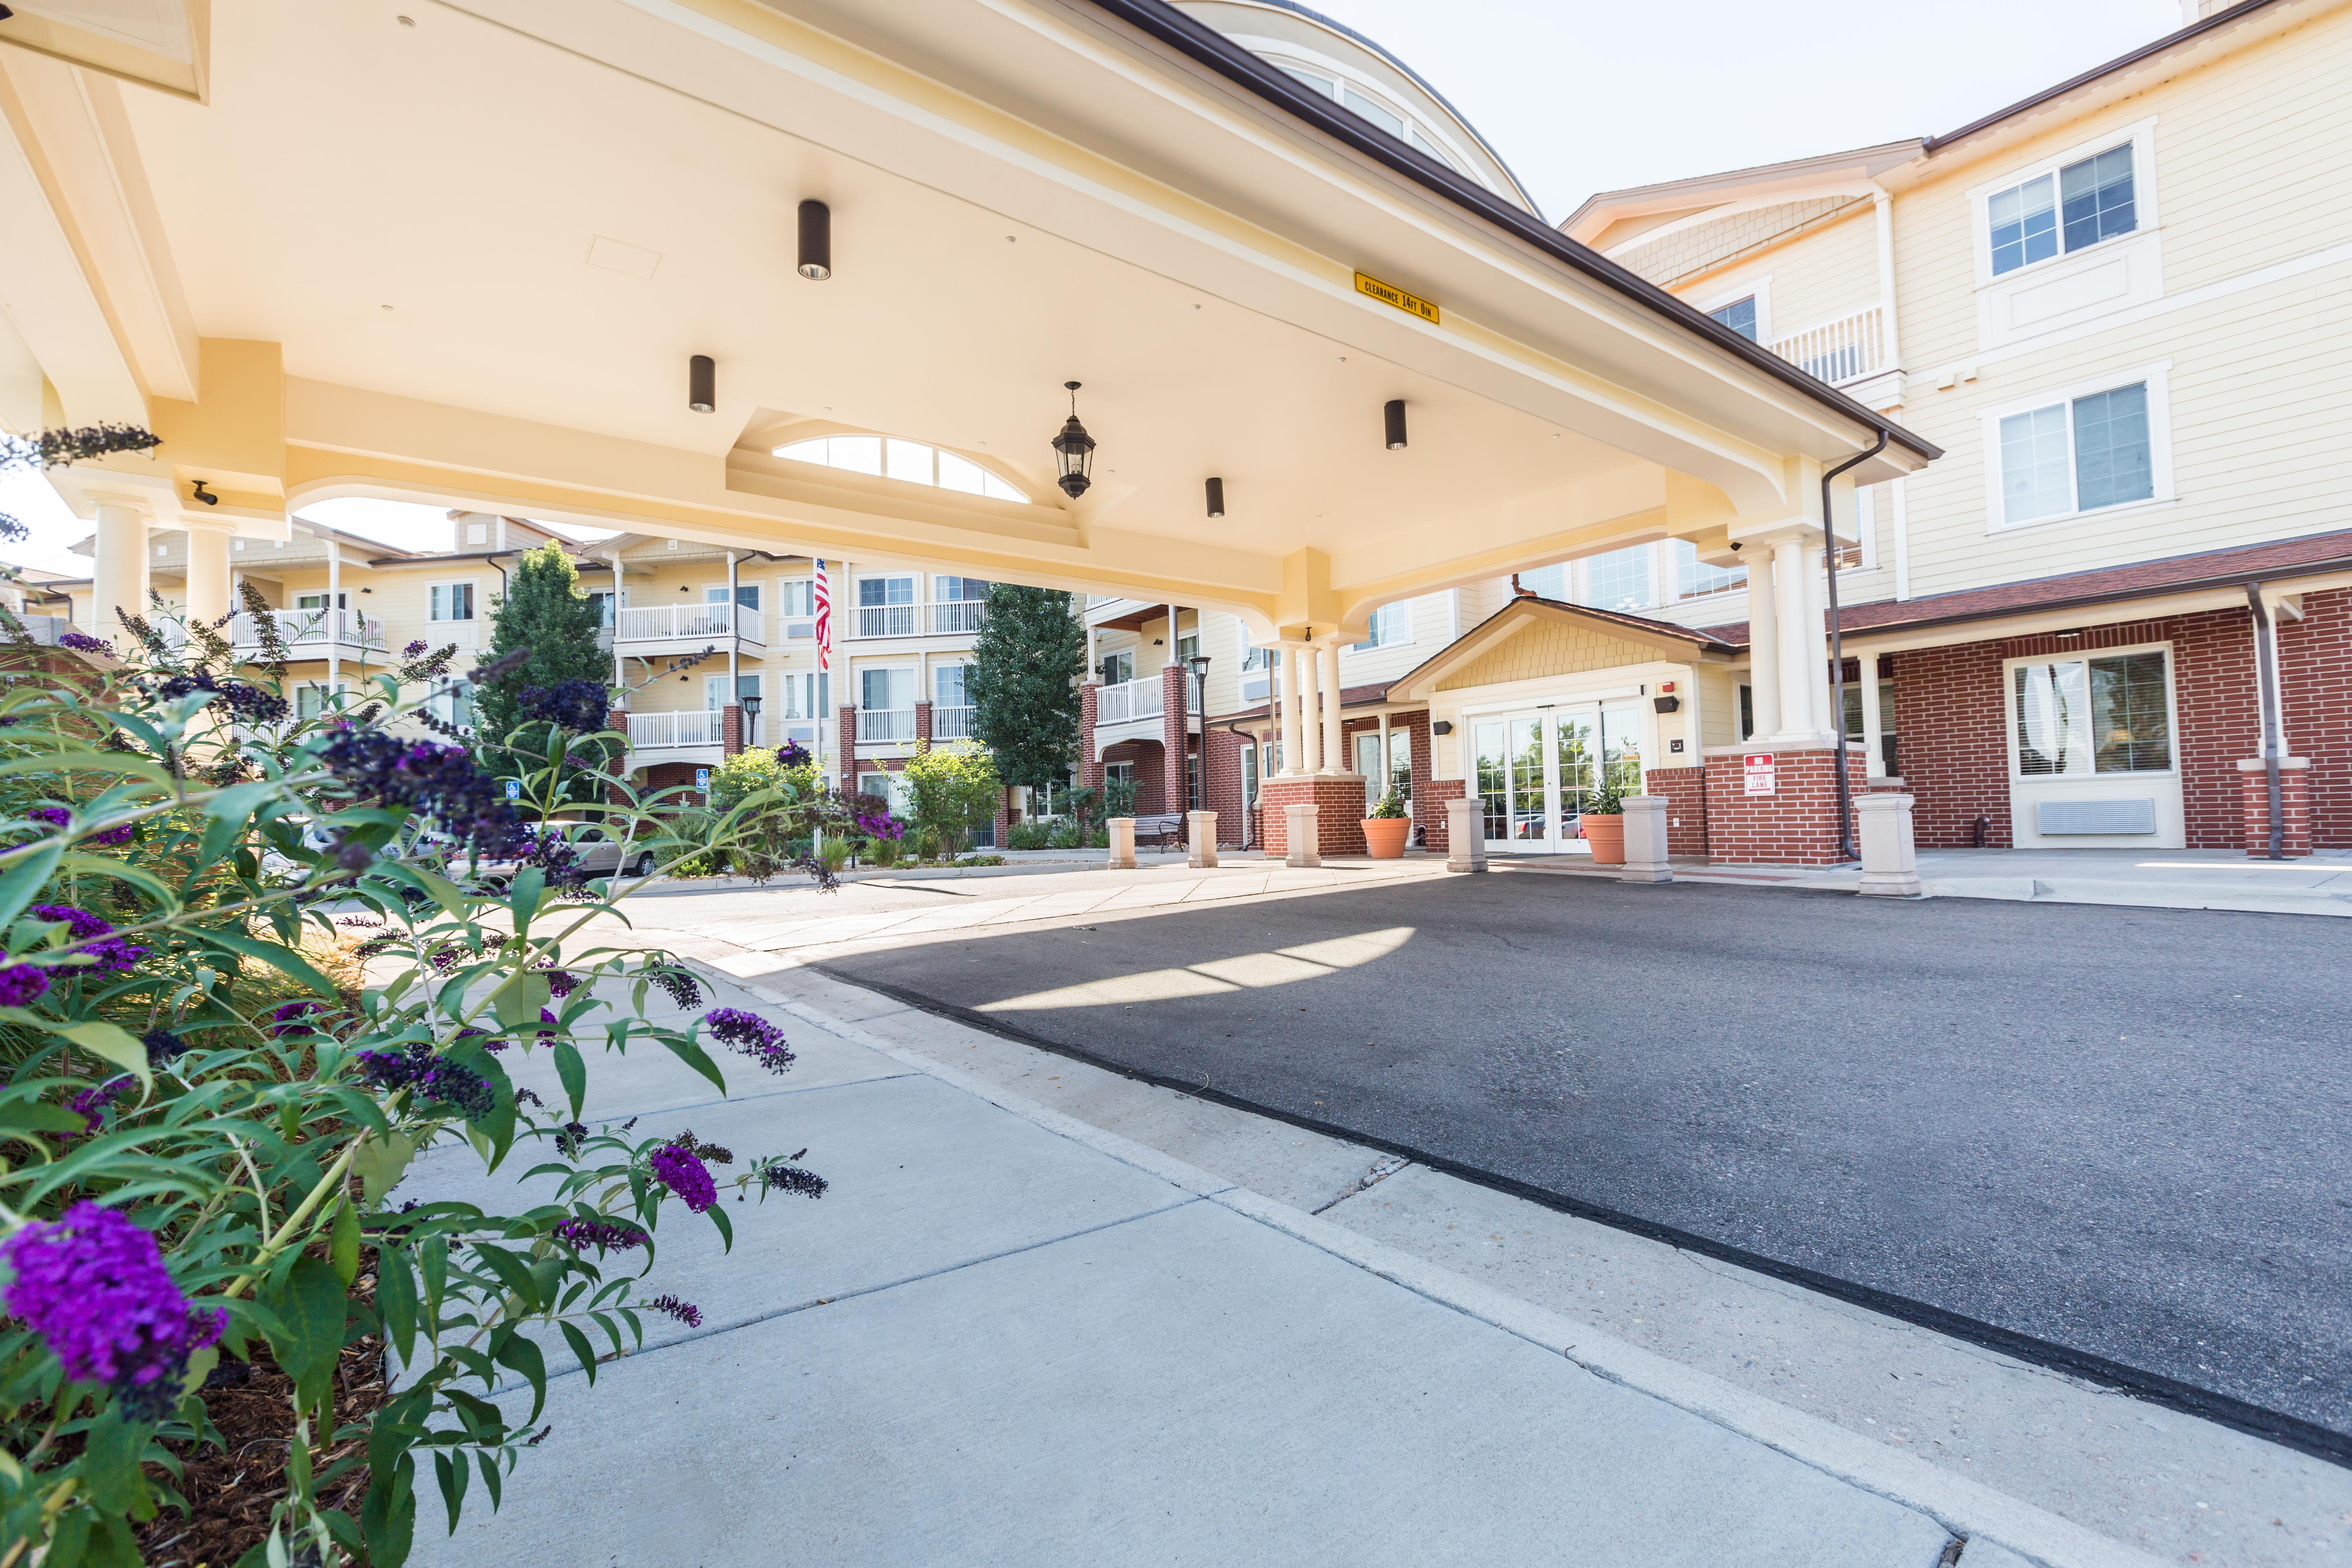 Entrance for Lakeview Senior Living in Lakewood, CO